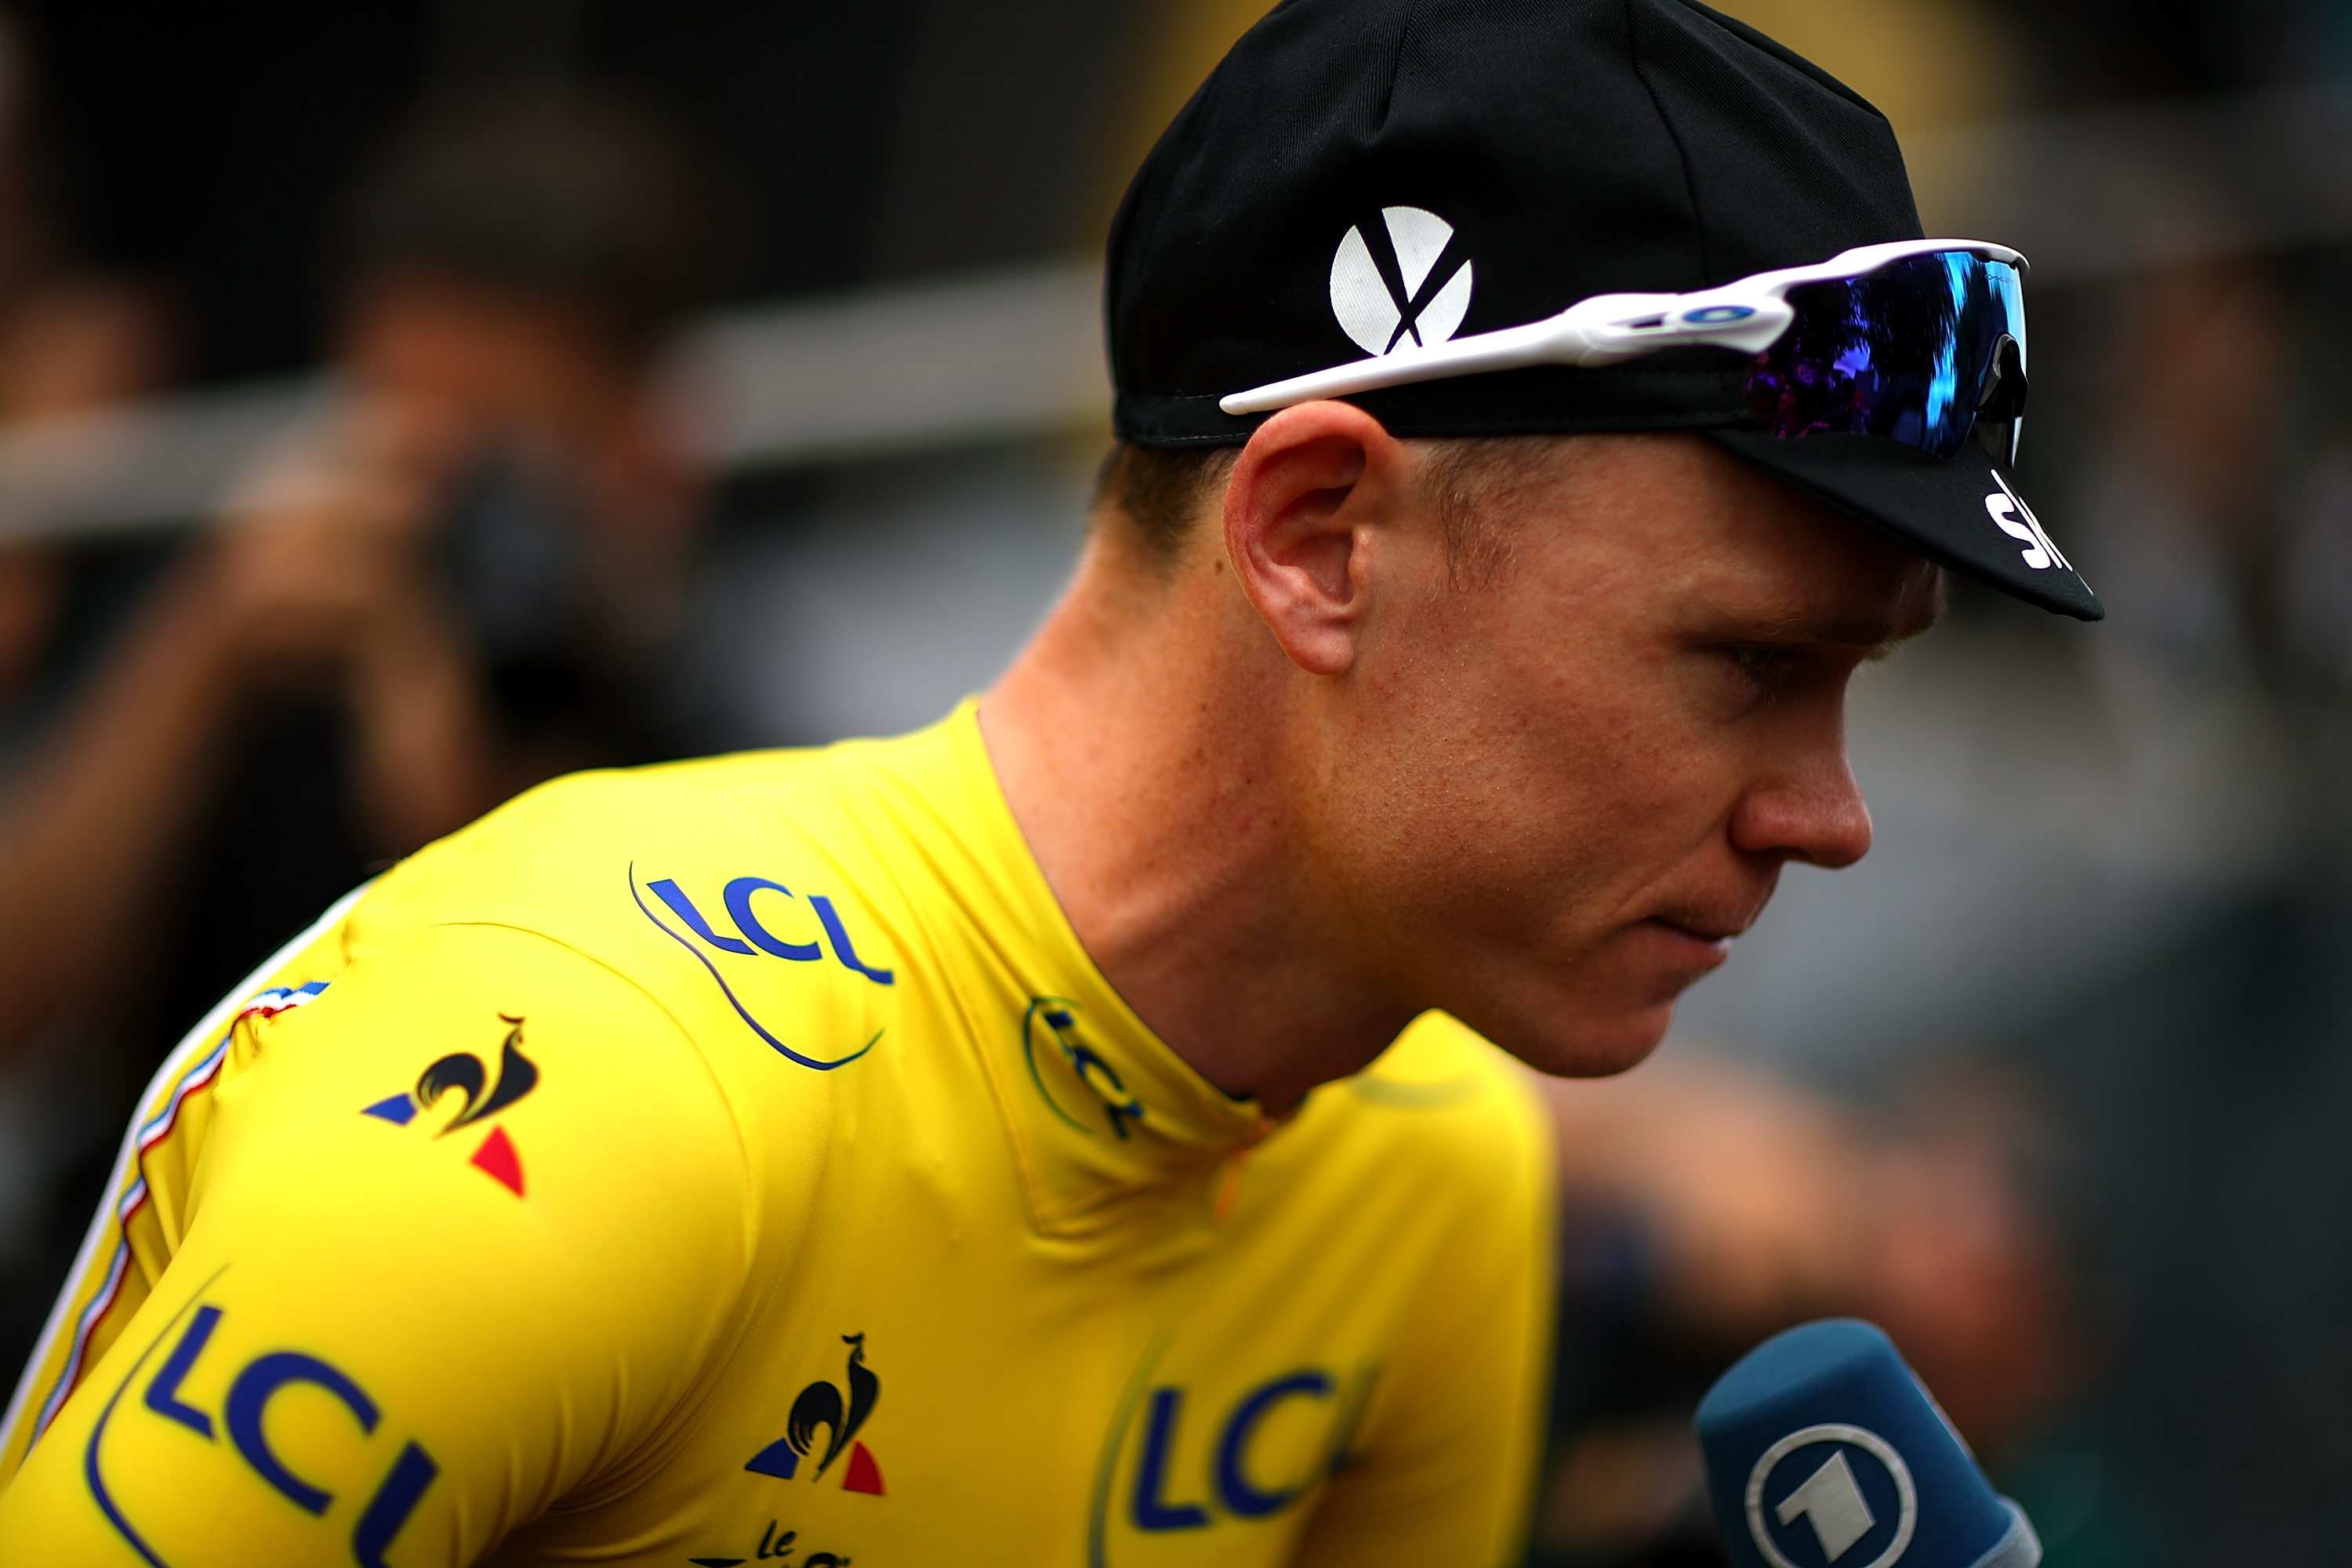 PARIS, FRANCE - JULY 23: Chris Froome of Great Britain and Team Sky speaks to the media ahead of stage twenty one of Le Tour de France 2017 on July 23, 2017 in Paris, France. (Photo by Chris Graythen/Getty Images)